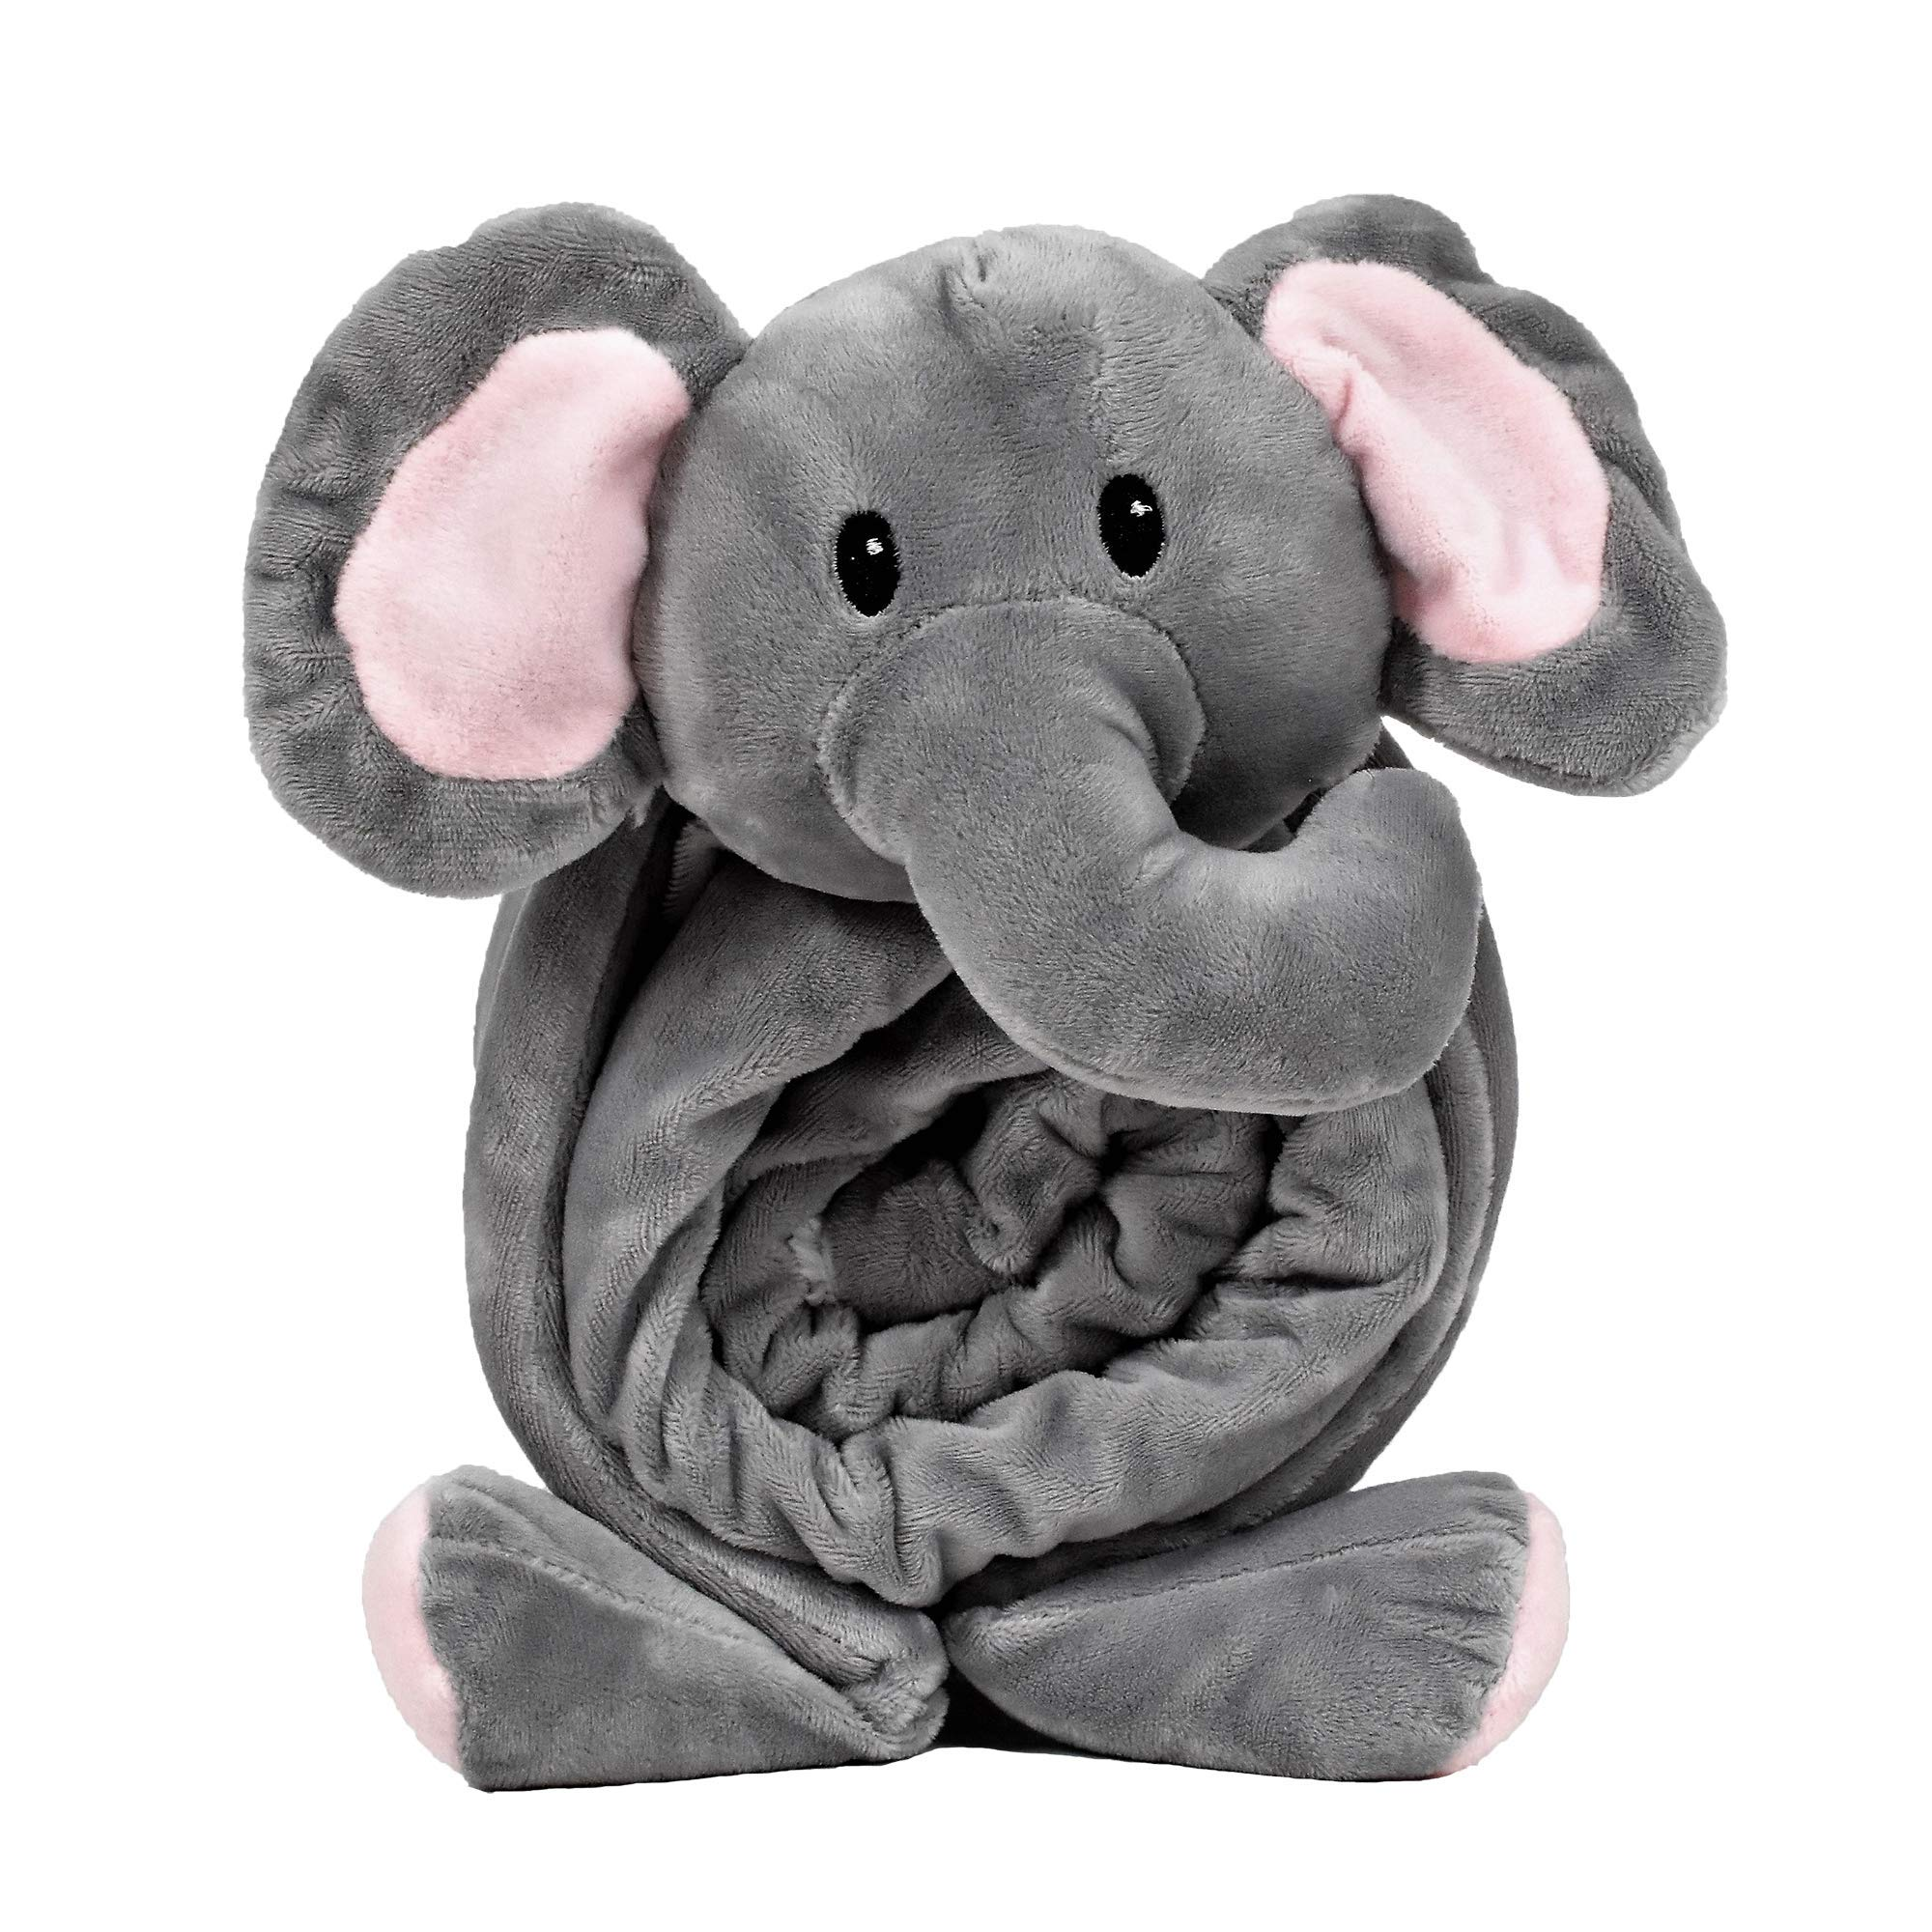 "SNUGGIES Elephant Stuffed Animal Blanket & Cuddly Pillow 2-in-1 Combo – Super Soft and Baby Elephant Blanket 37"" x 30"" and Zoo Plush Toy 14"" x 8"" – Perfect Unisex Baby Shower Gift"